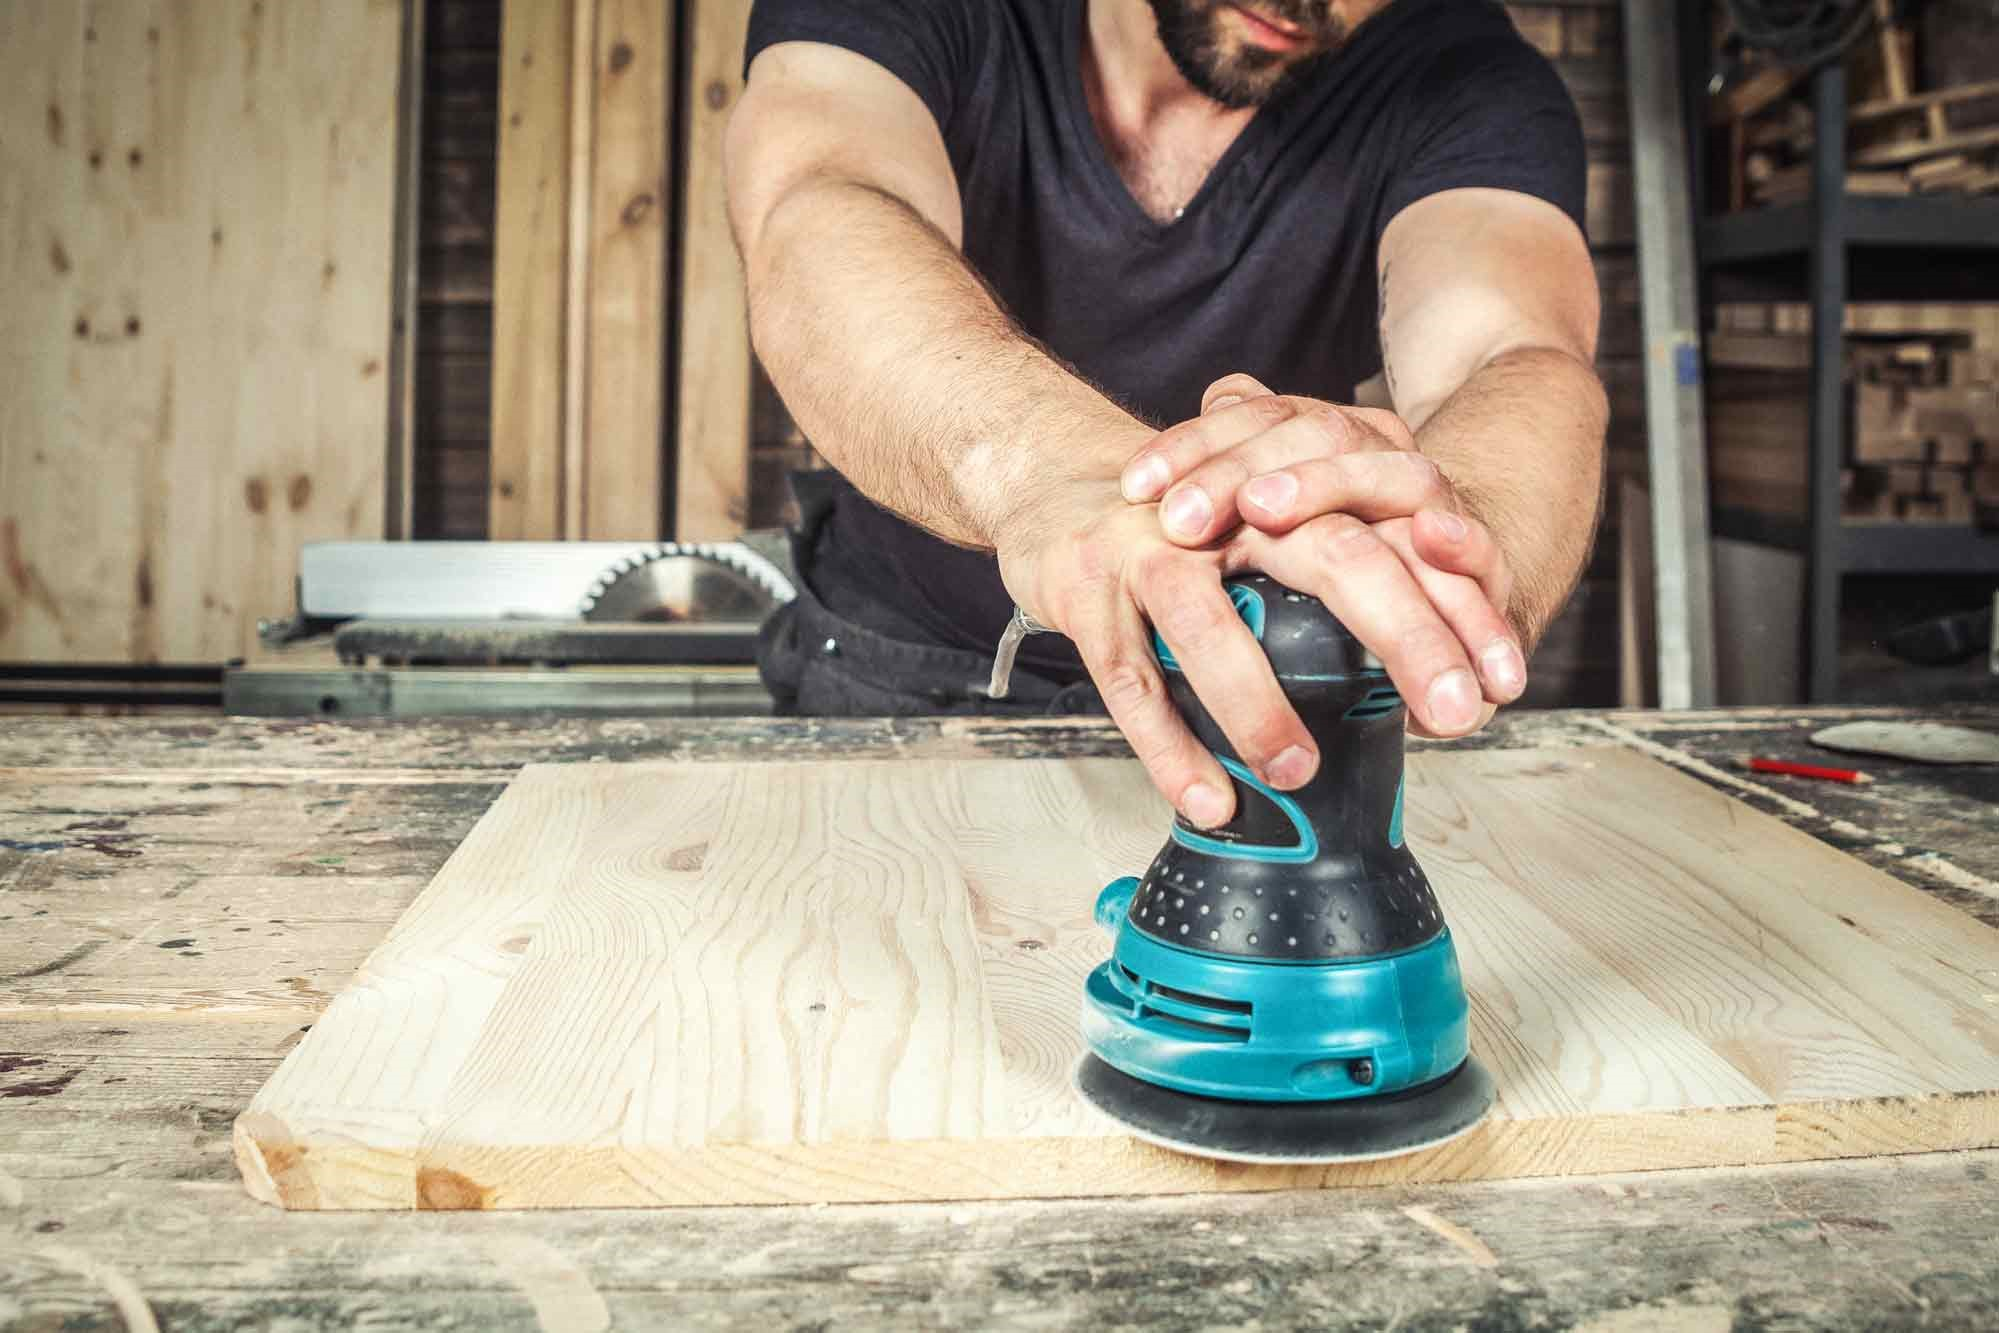 How To Use A Random Orbital Sander: Sanding the surface